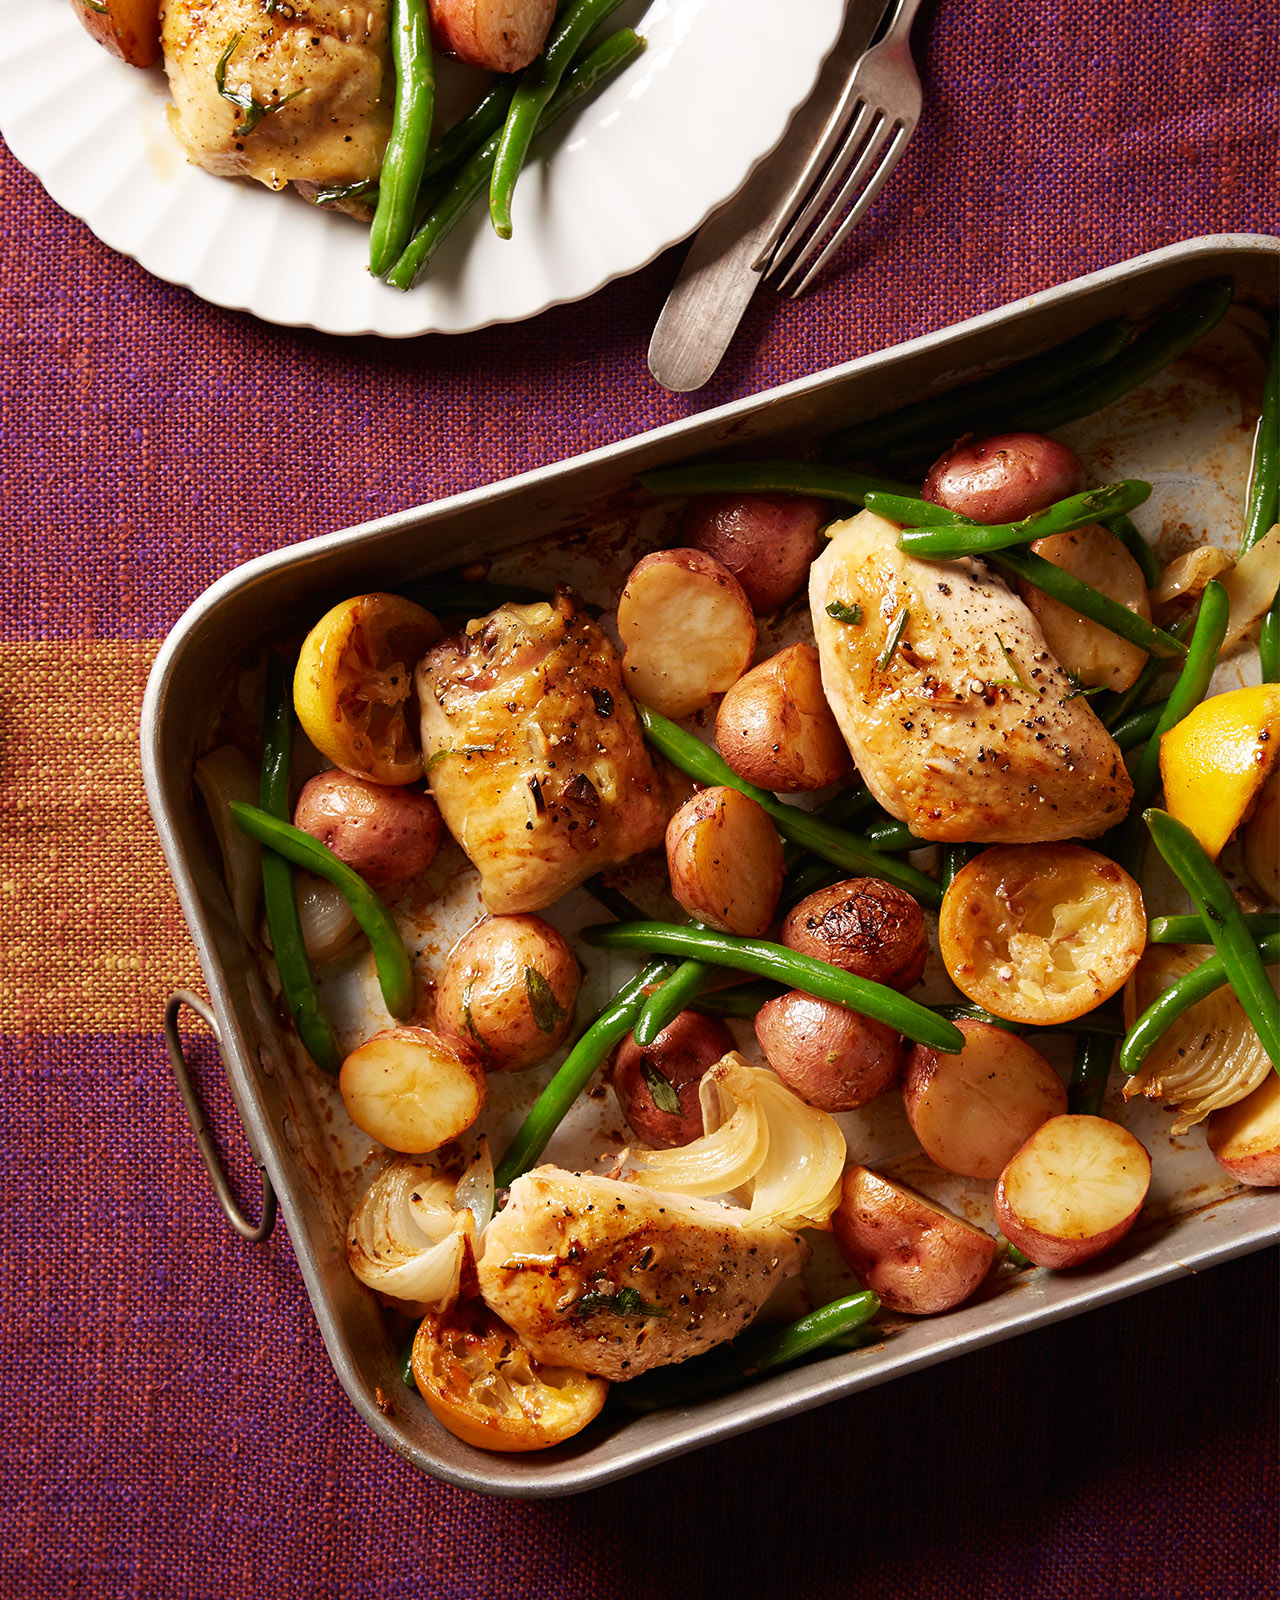 Garlic-Roasted Chicken With Lemon and Vegetables